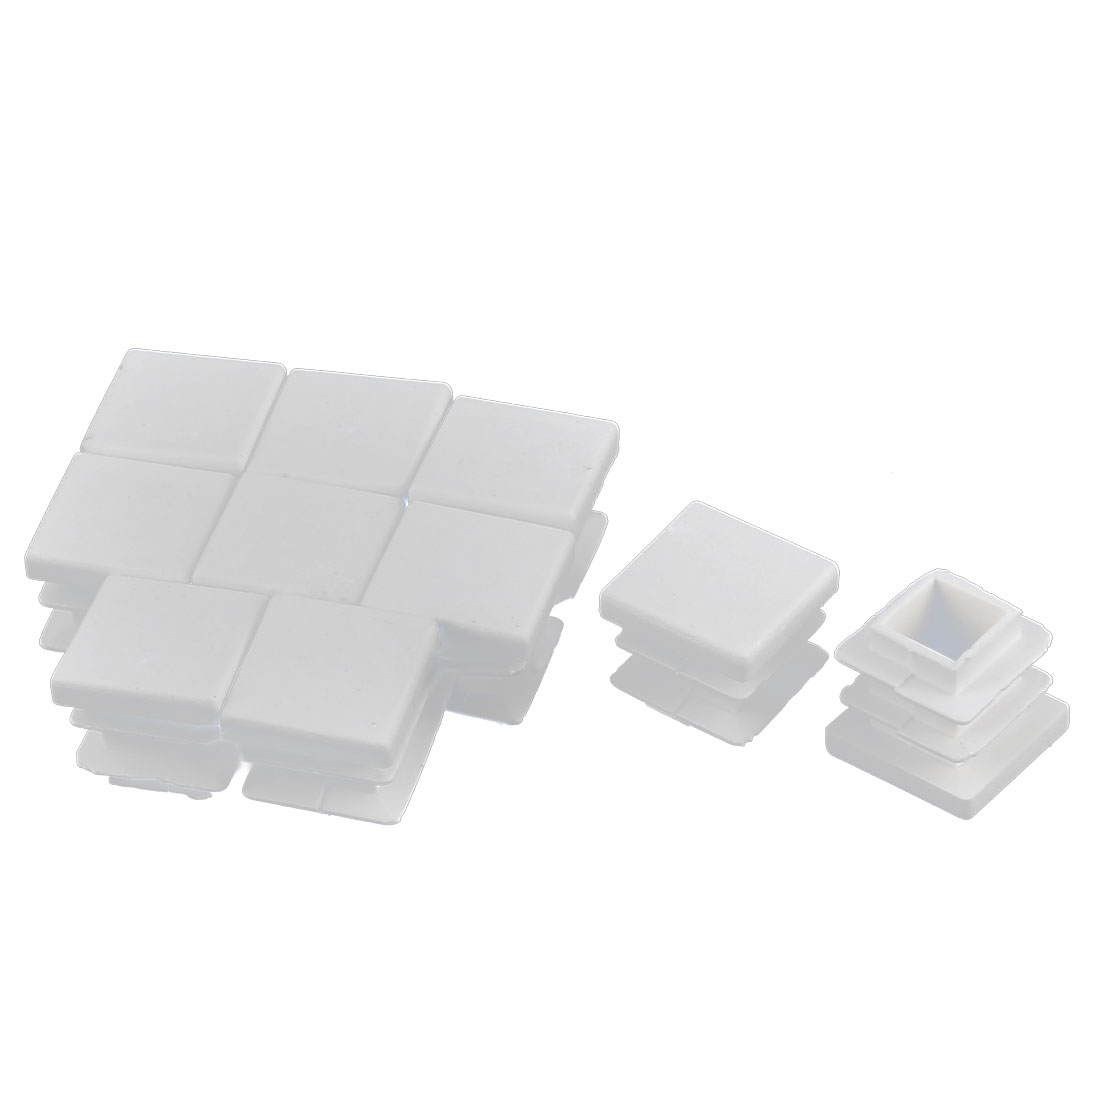 Furniture Desk Chair Legs Plastic Square Tube Pipe Insert Cover End Caps White 16 x 16mm 10pcs